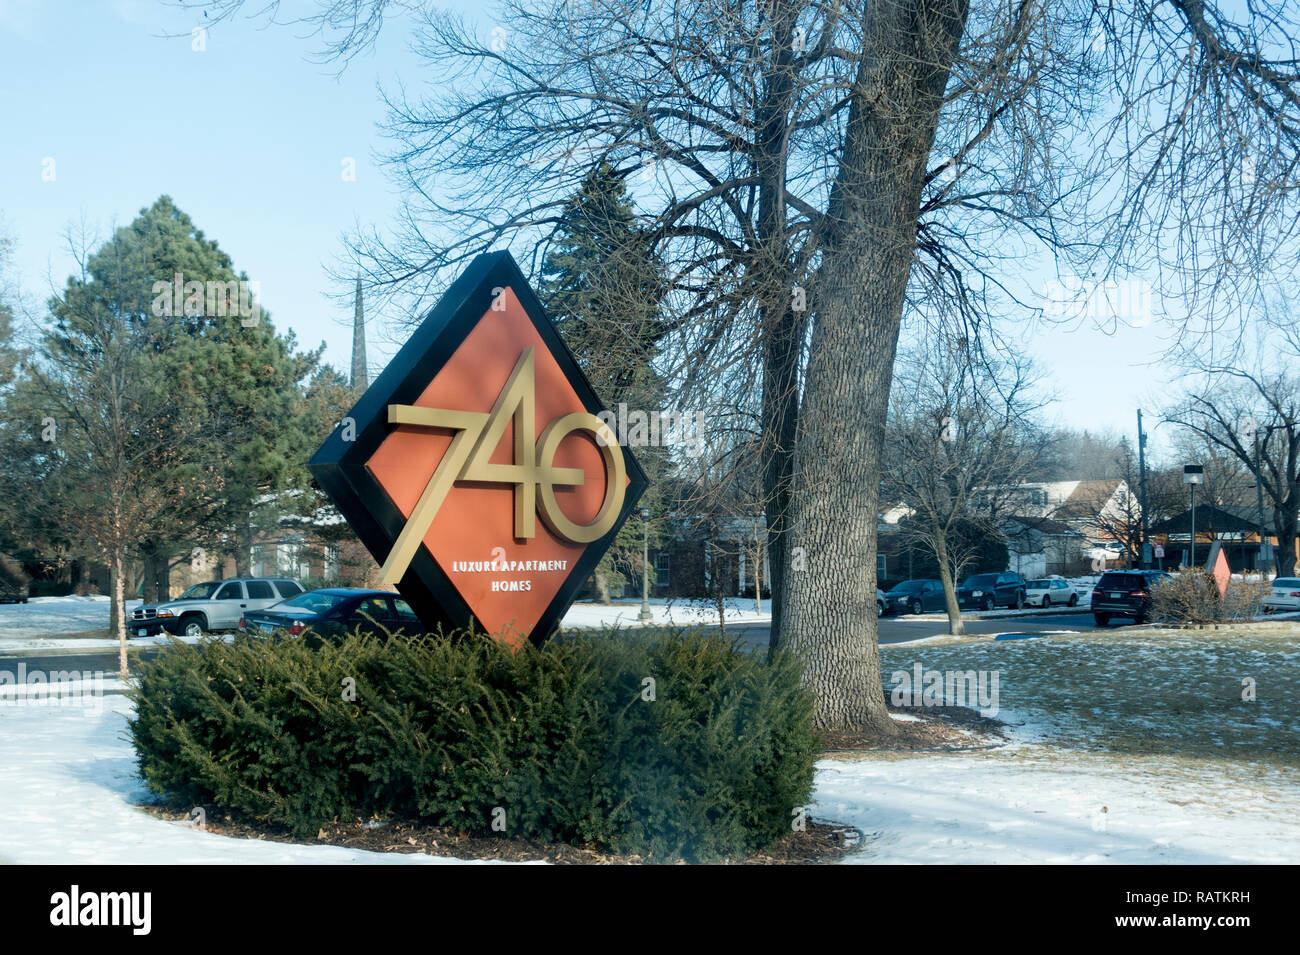 Address Sign For The Upscale 740 Luxury Apartment Homes Building On North Mississippi River Boulevard St Paul Minnesota Mn Usa Stock Photo Alamy